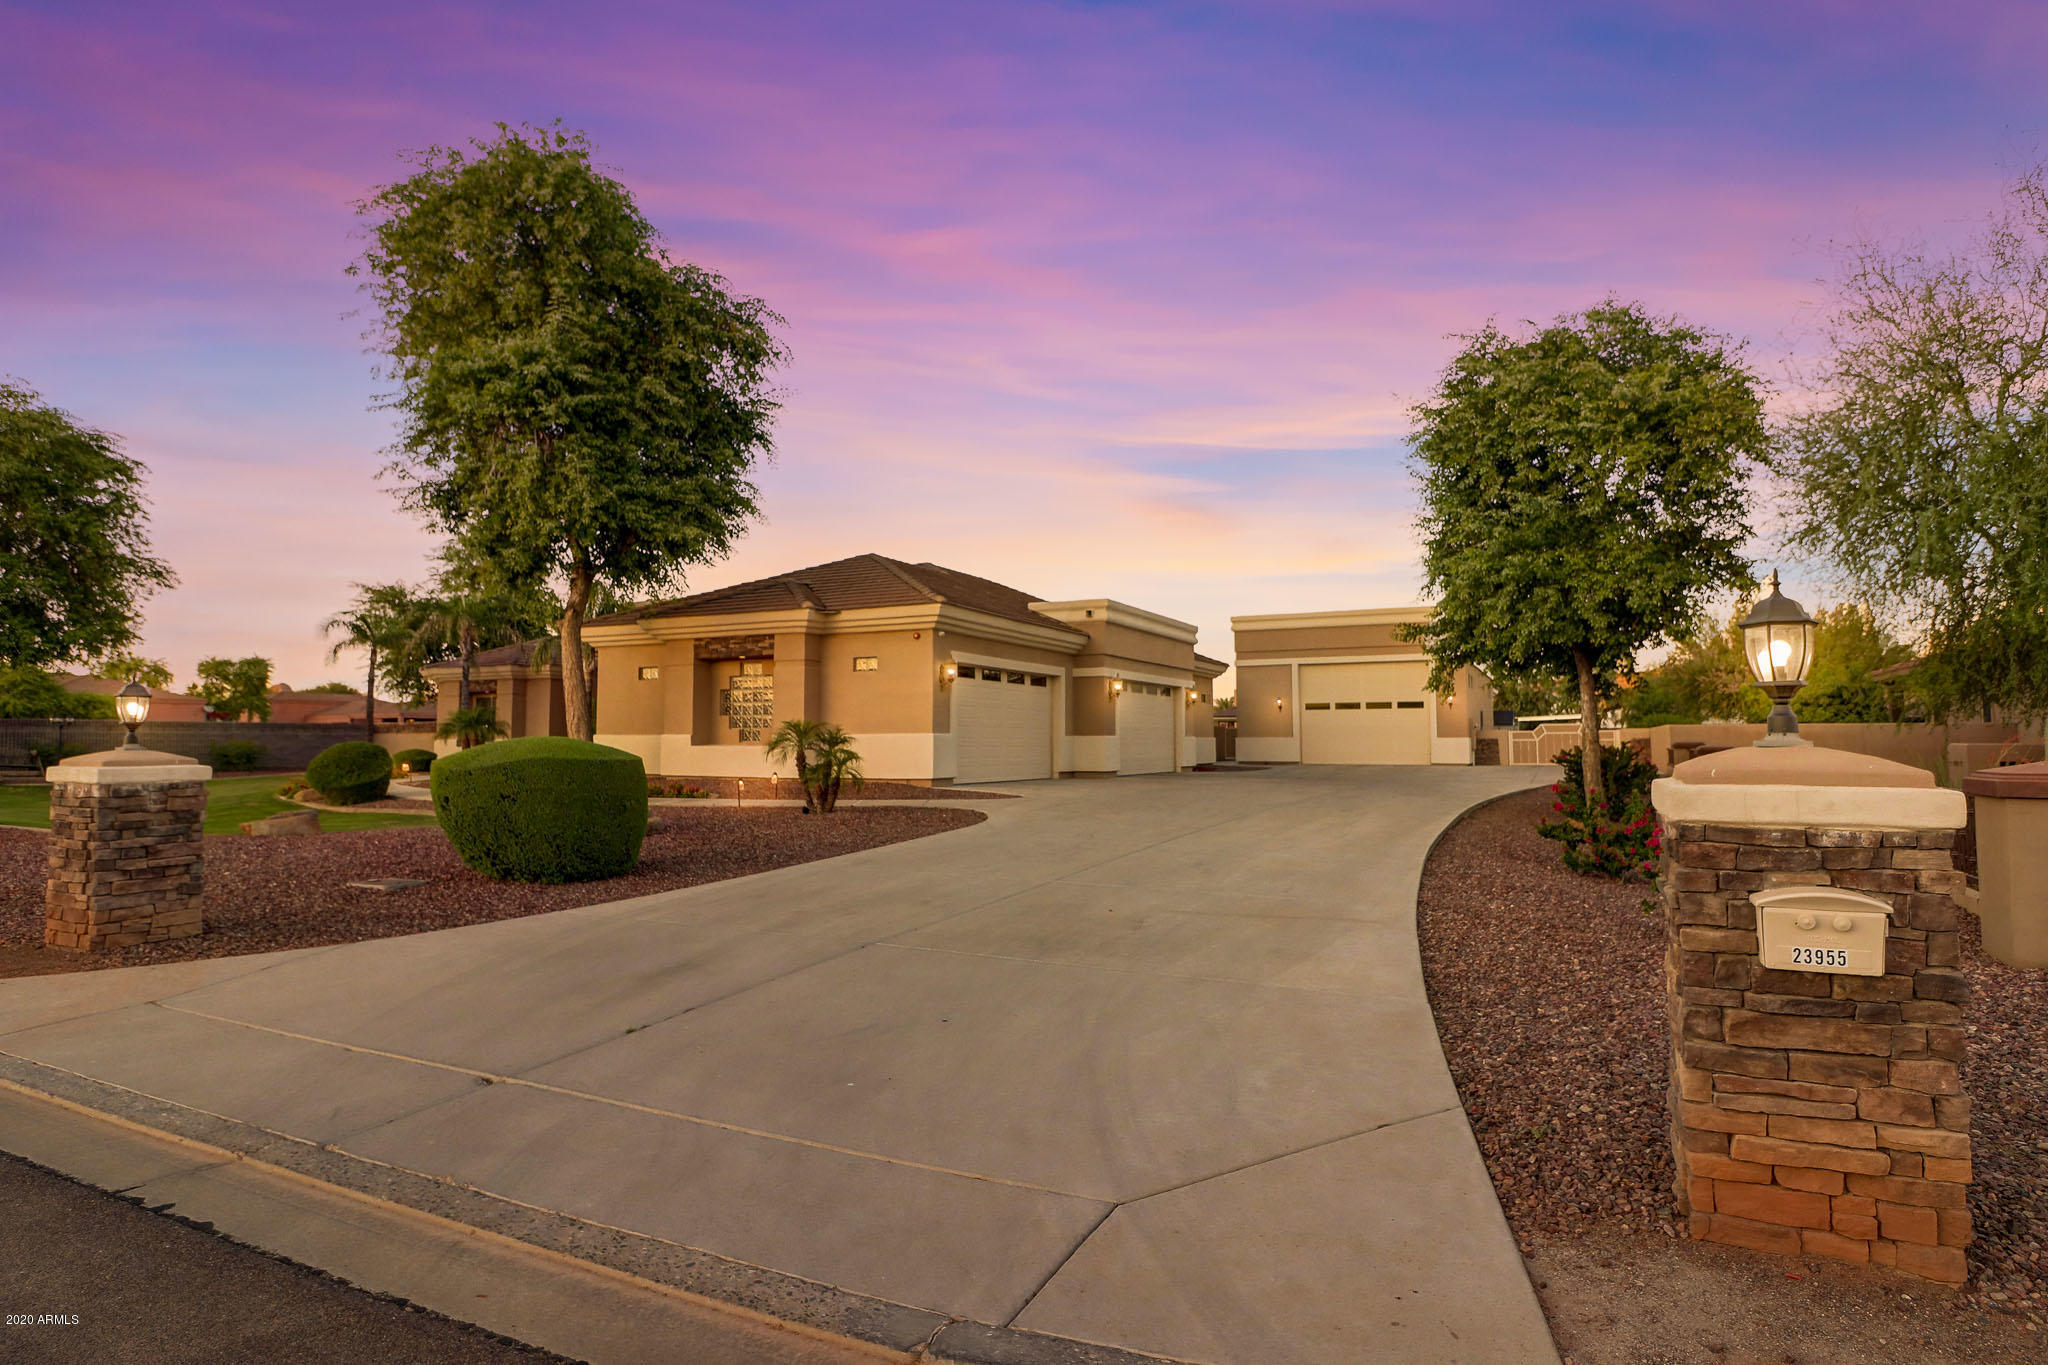 Photo of 23955 N 71ST Avenue, Peoria, AZ 85383